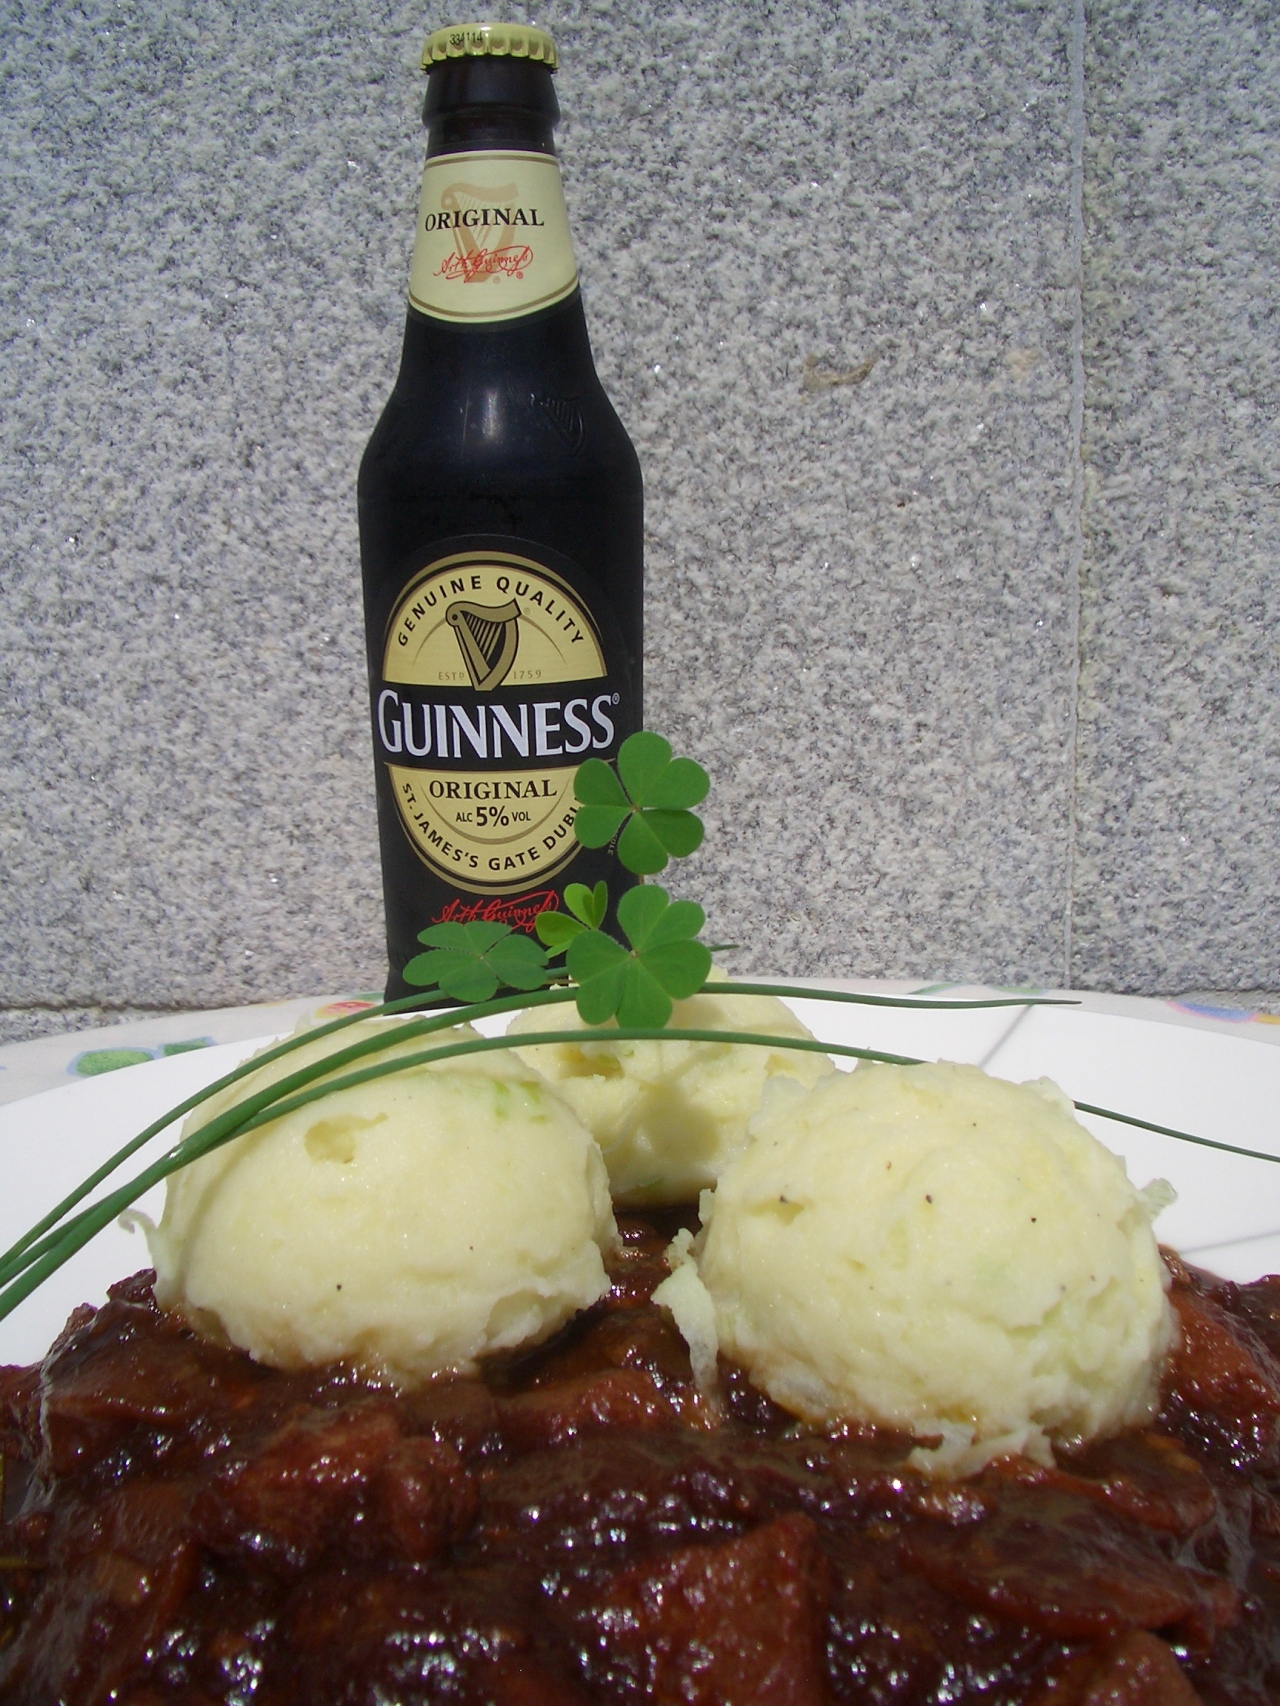 Jabalí Estofado con Cerveza Guinness y Champ – Guinness Wild Boar Stew with Champ